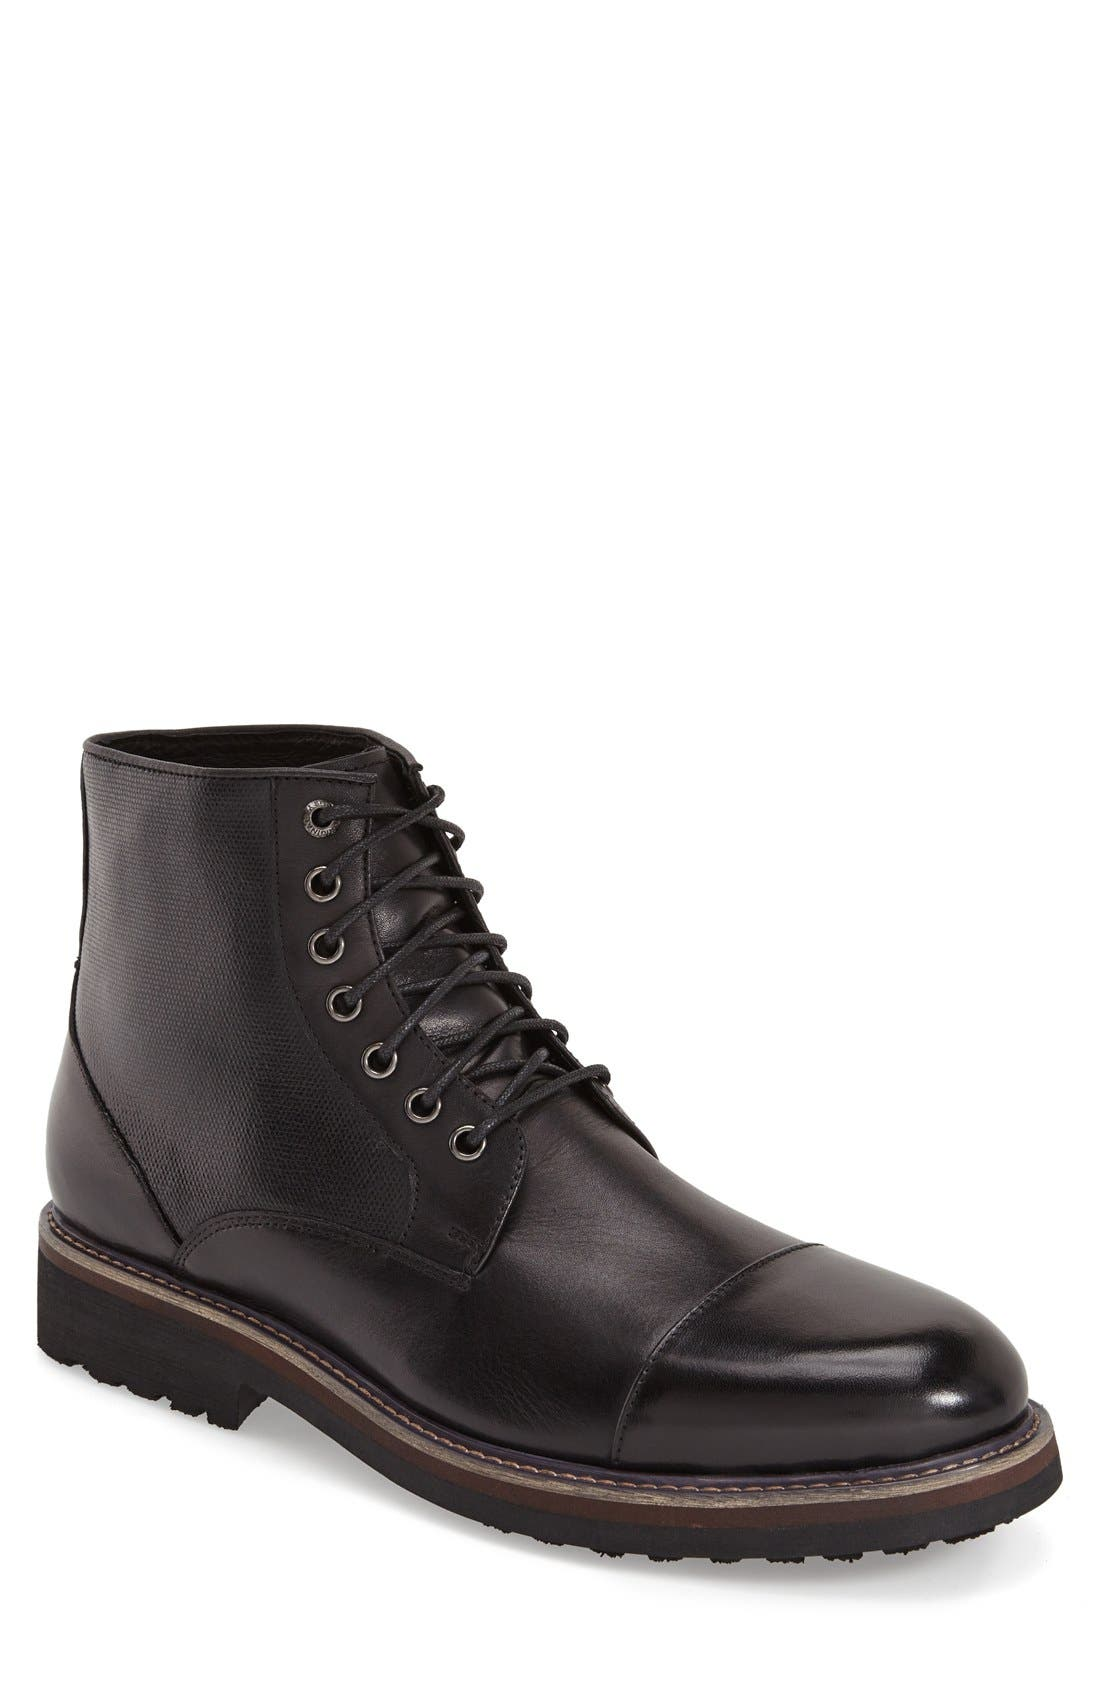 'Northstar' Cap Toe Boot,                         Main,                         color, Black Leather